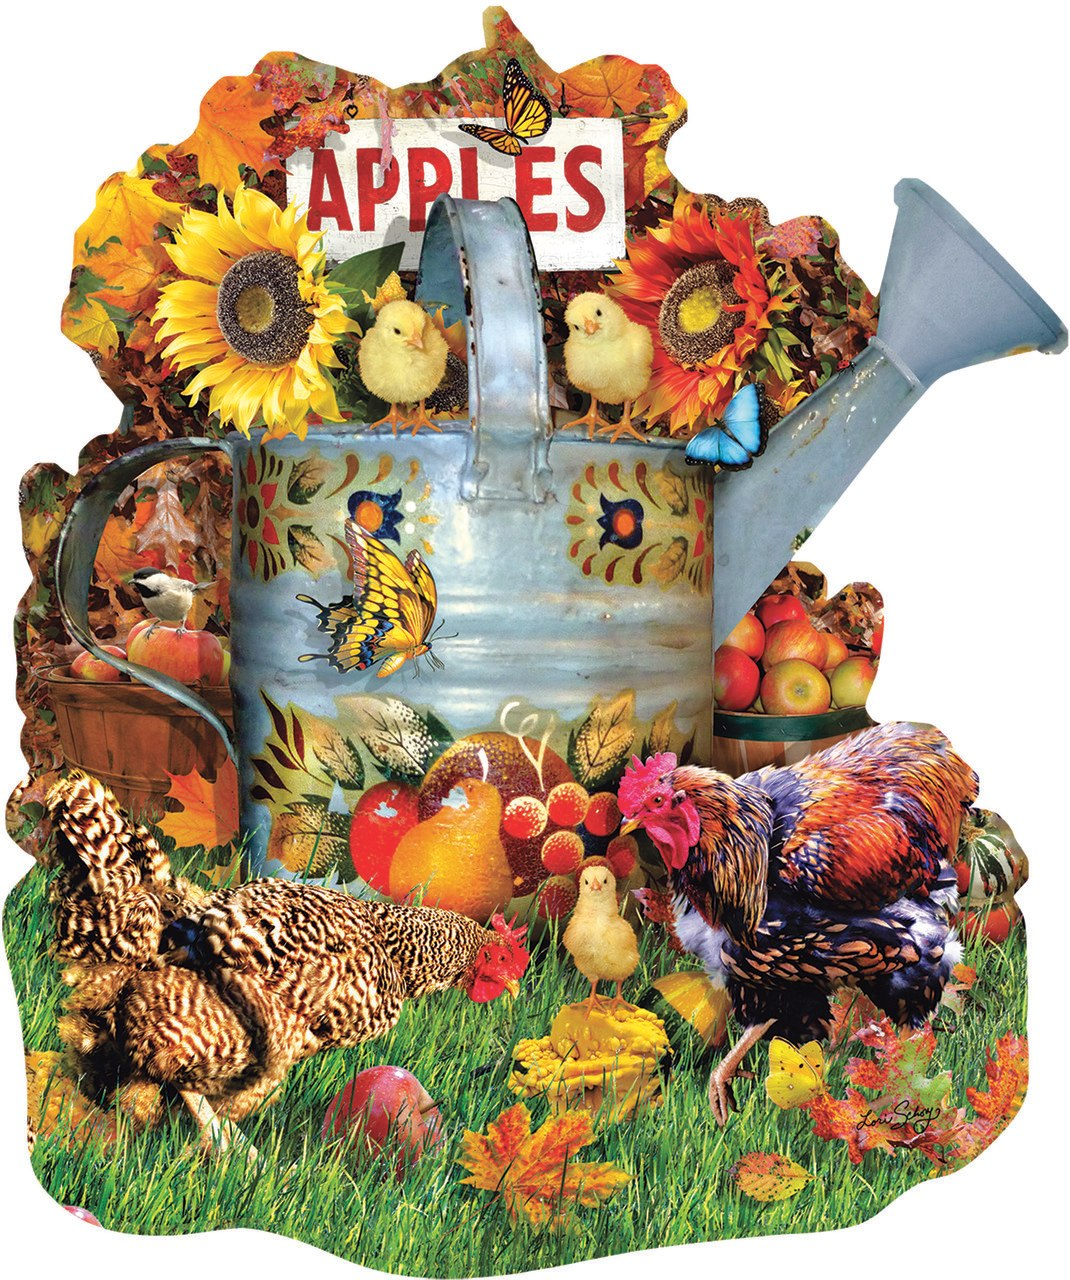 Fall Watering Can - 1000pc Jigsaw Puzzle by Sunsout  			  					NEW